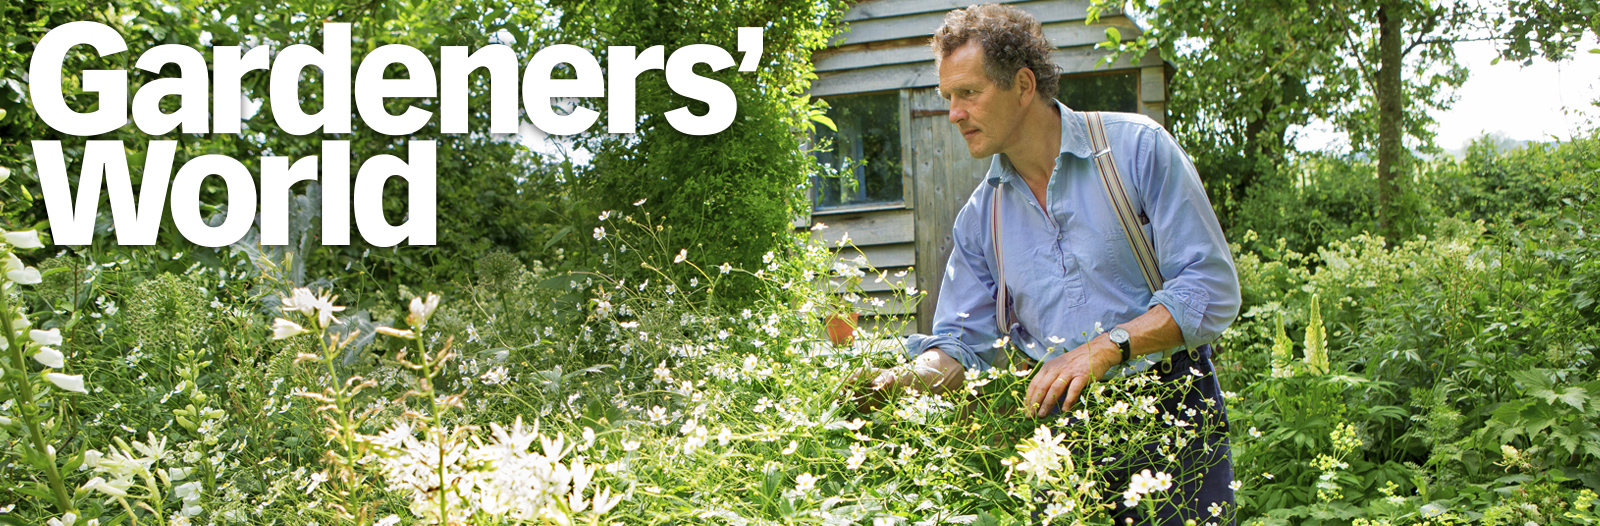 Gardeners' World nabestellen